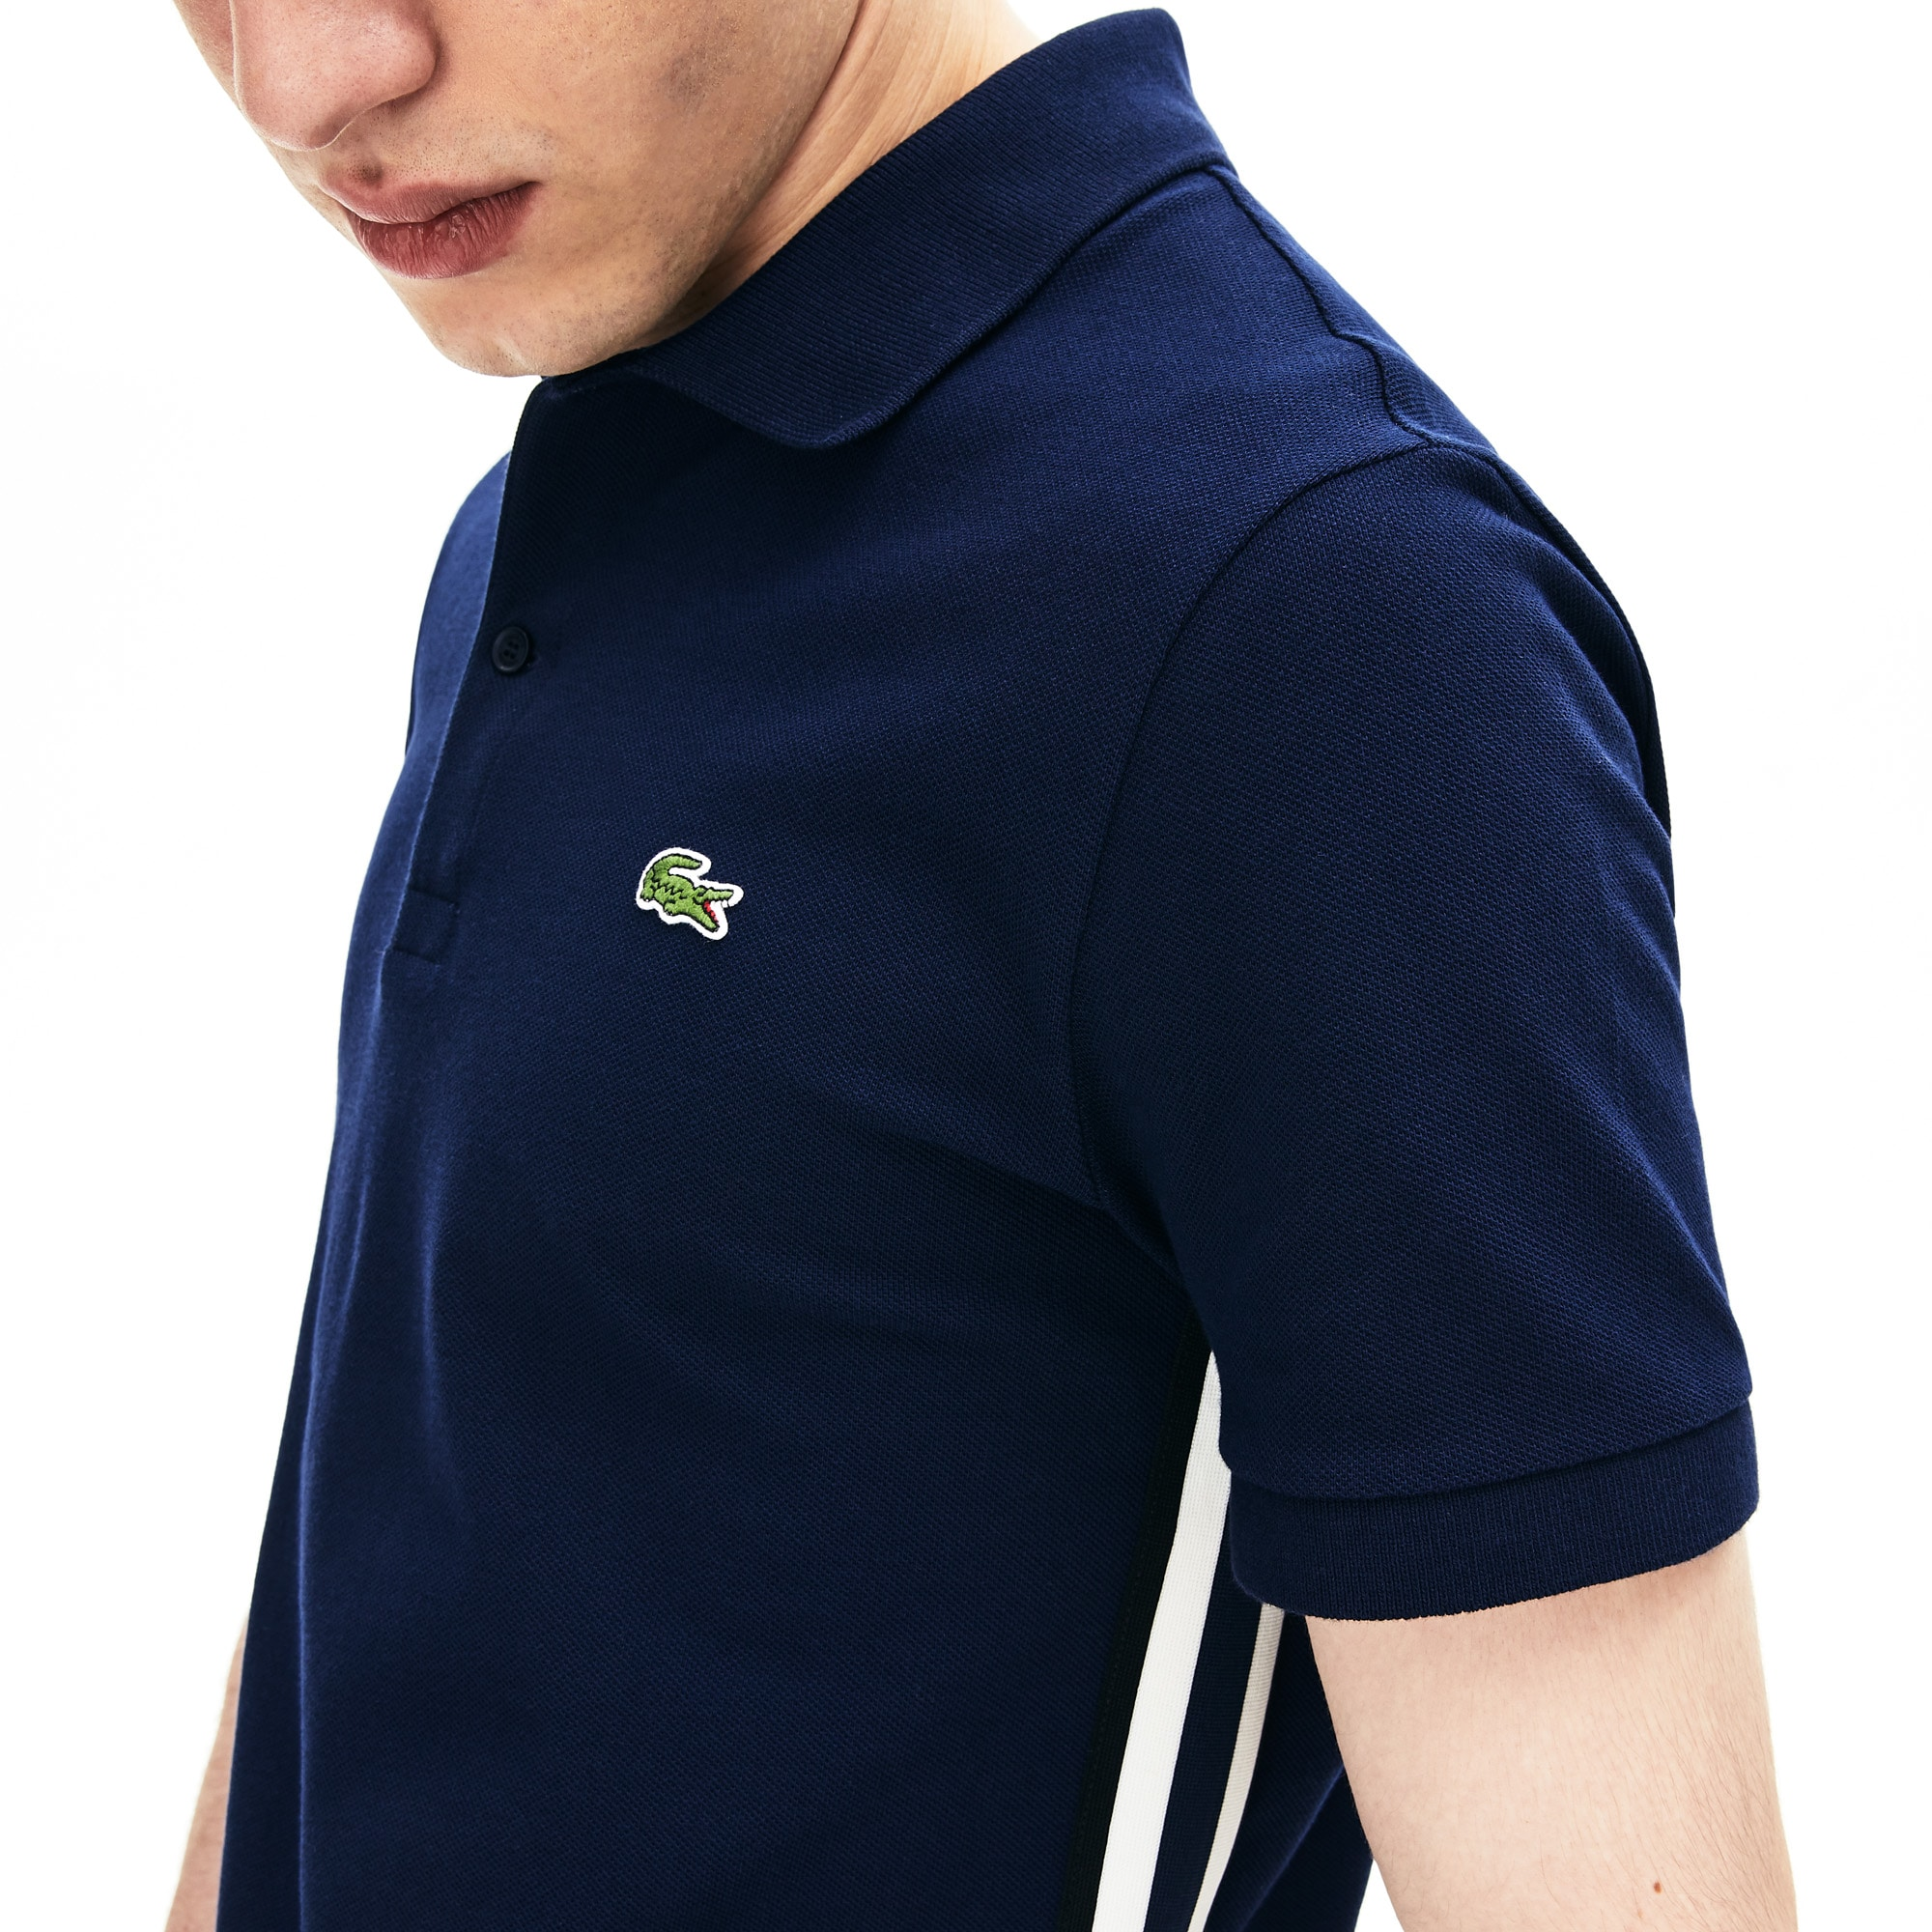 Men's Short Sleeve Side Stripe Pique Polo